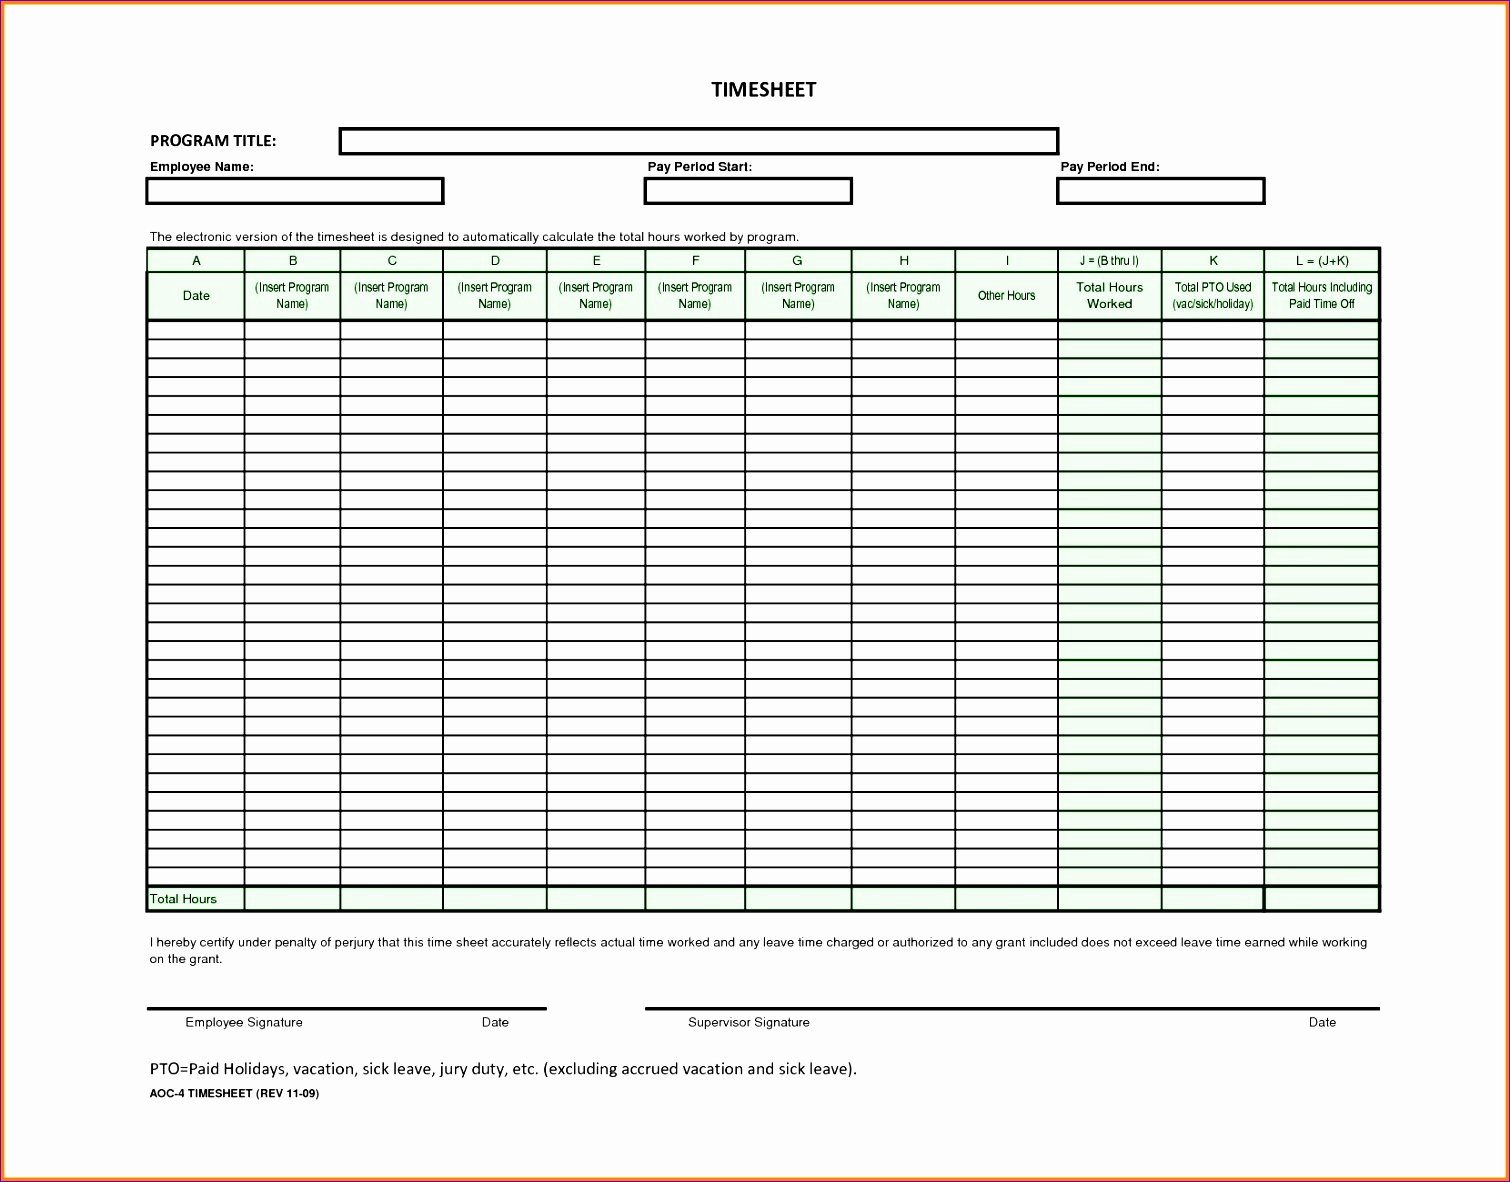 Monthly Timesheet Template Excel Unique 8 Semi Monthly Timesheet Template Excel Exceltemplates